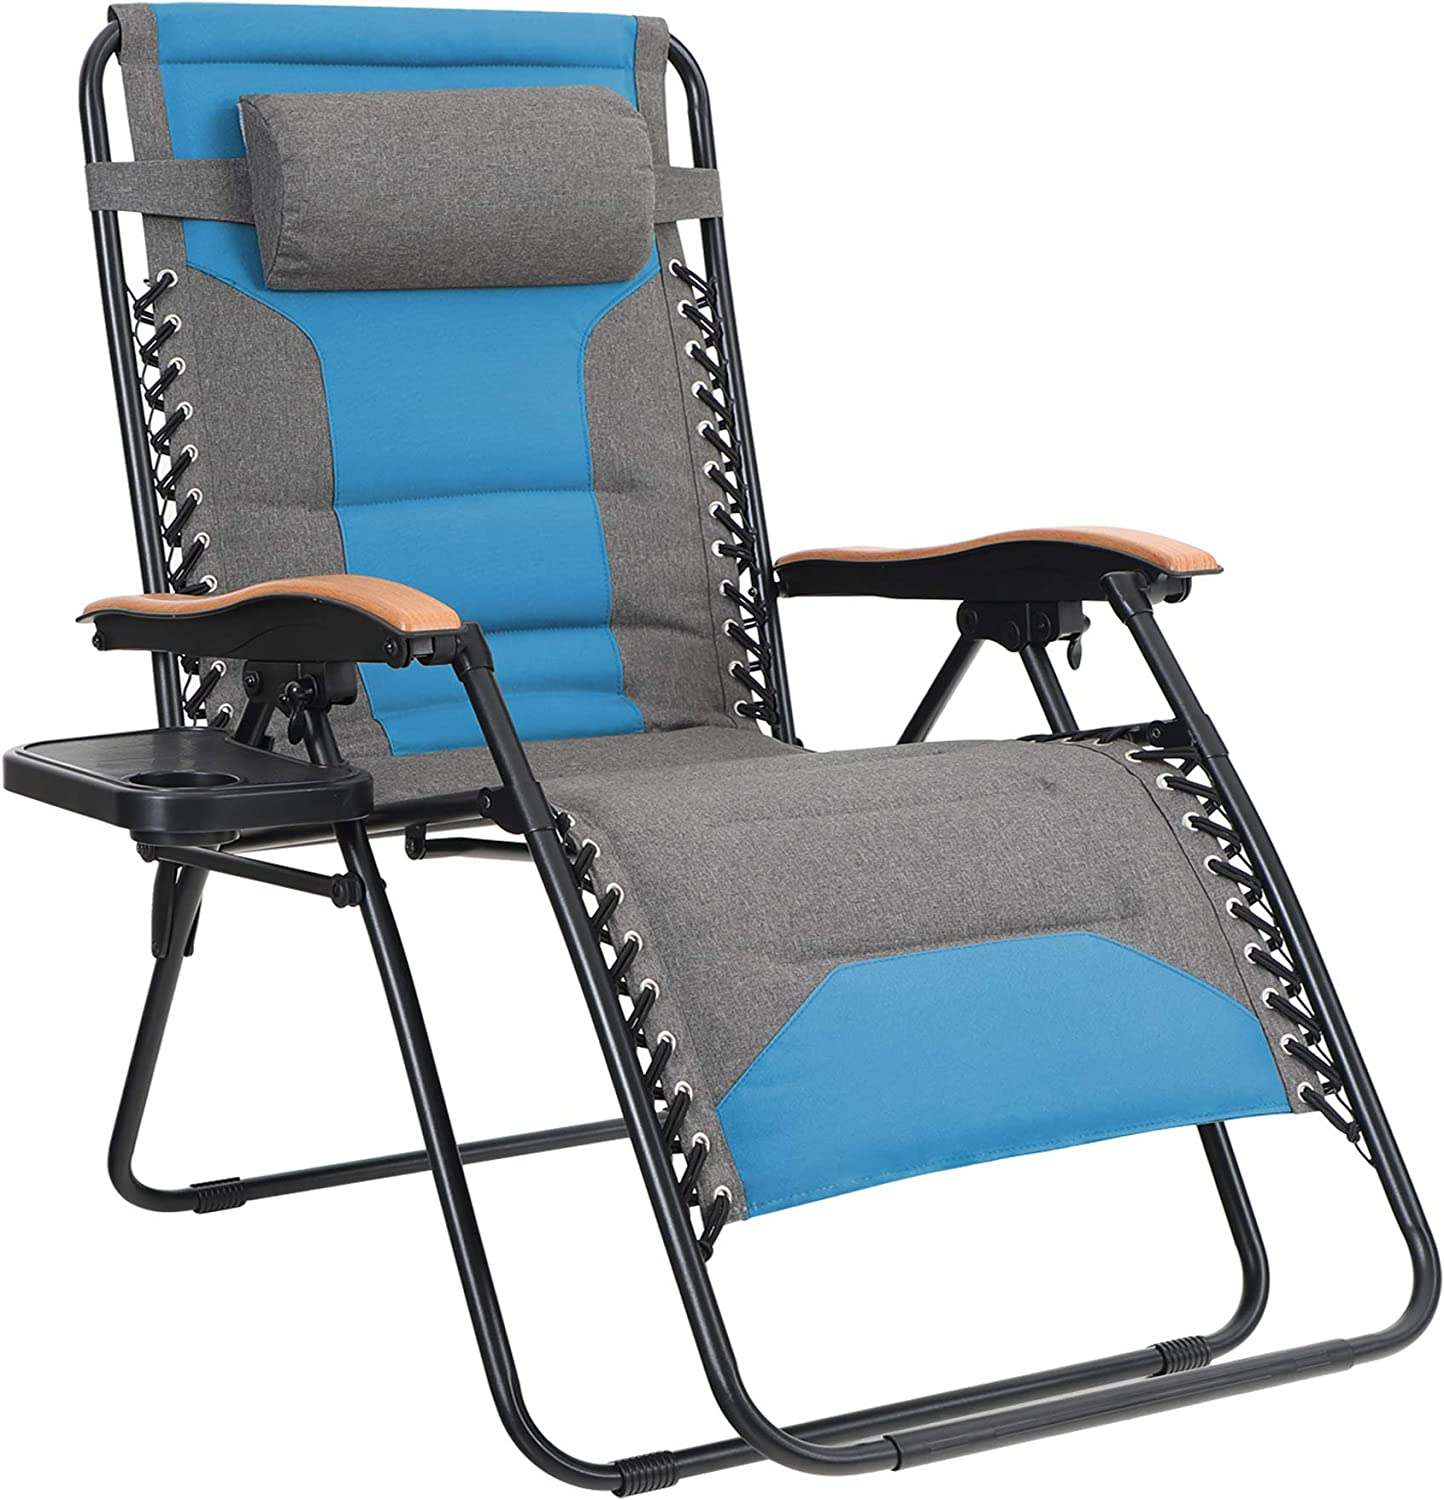 MFSTUDIO Oversized Zero Gravity Chair XL Patio Recliners Padded Folding Chair with Cup Holder, Extra Wide Chaise Lounge for Outdoor Yard Poolside, Pacific Blue